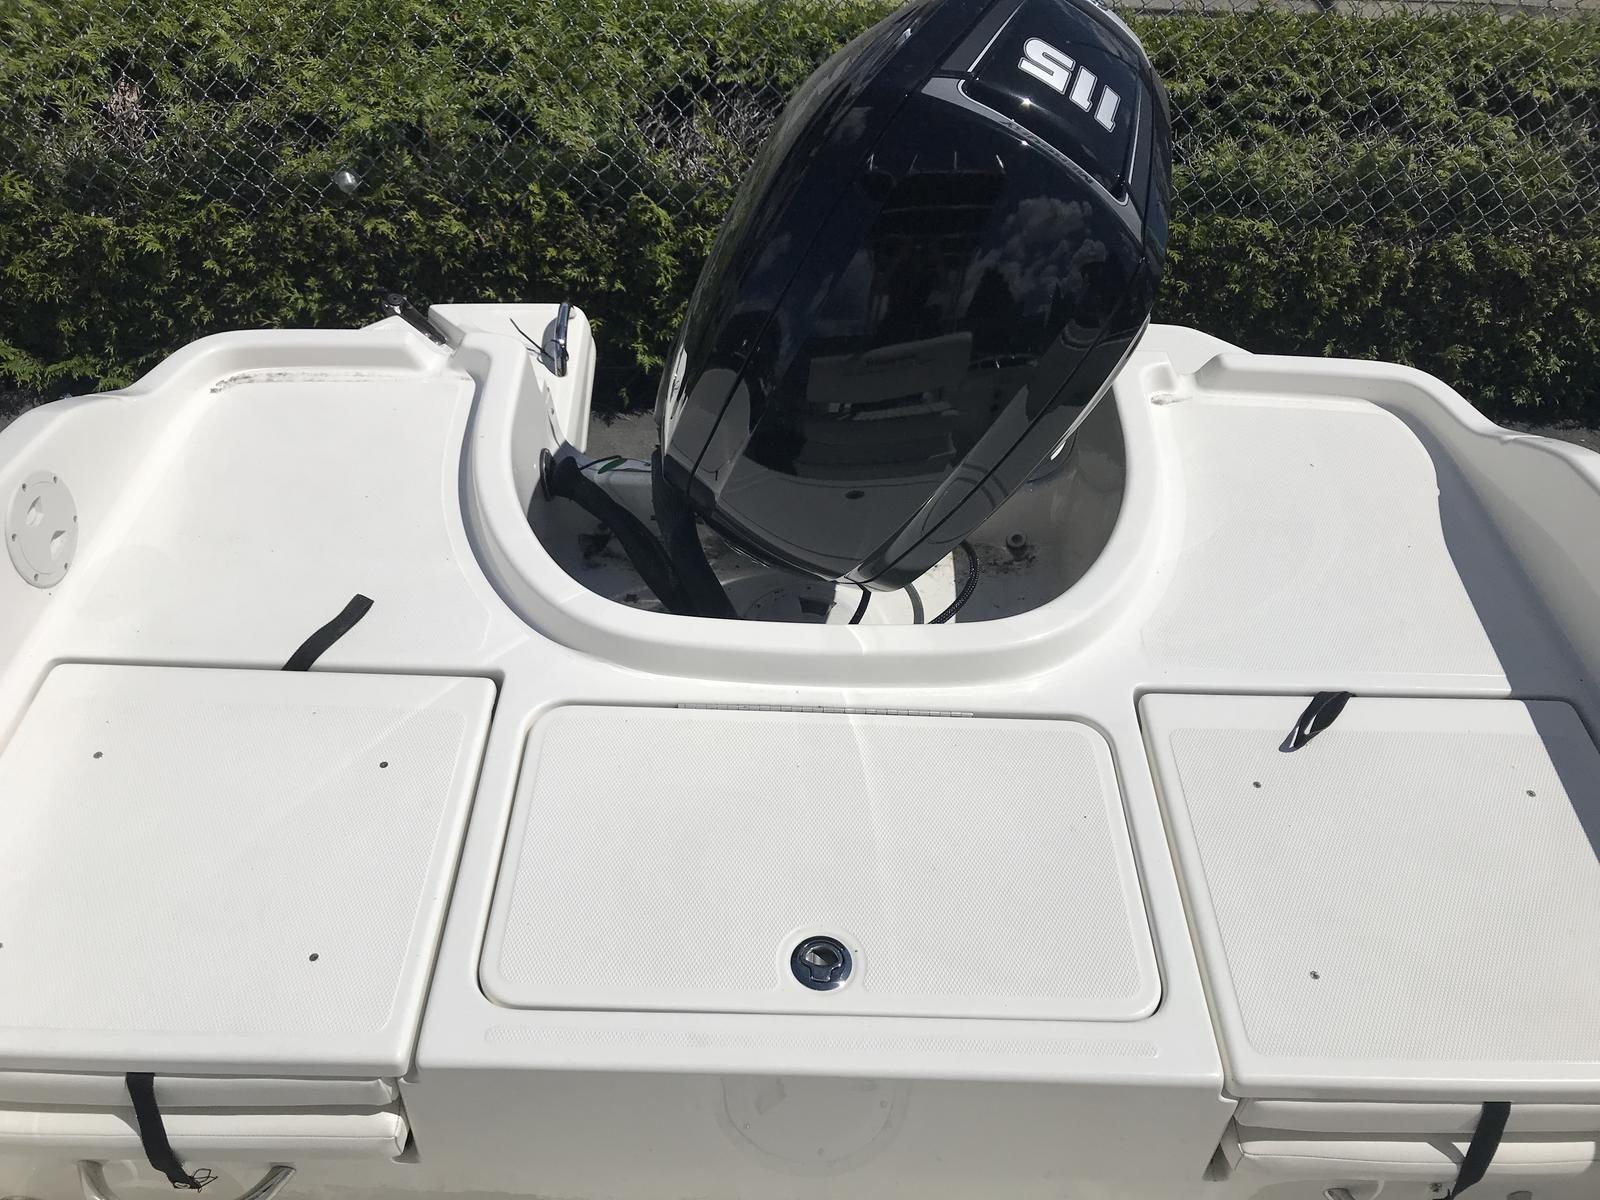 2018 Bayliner boat for sale, model of the boat is Element F18 & Image # 6 of 6